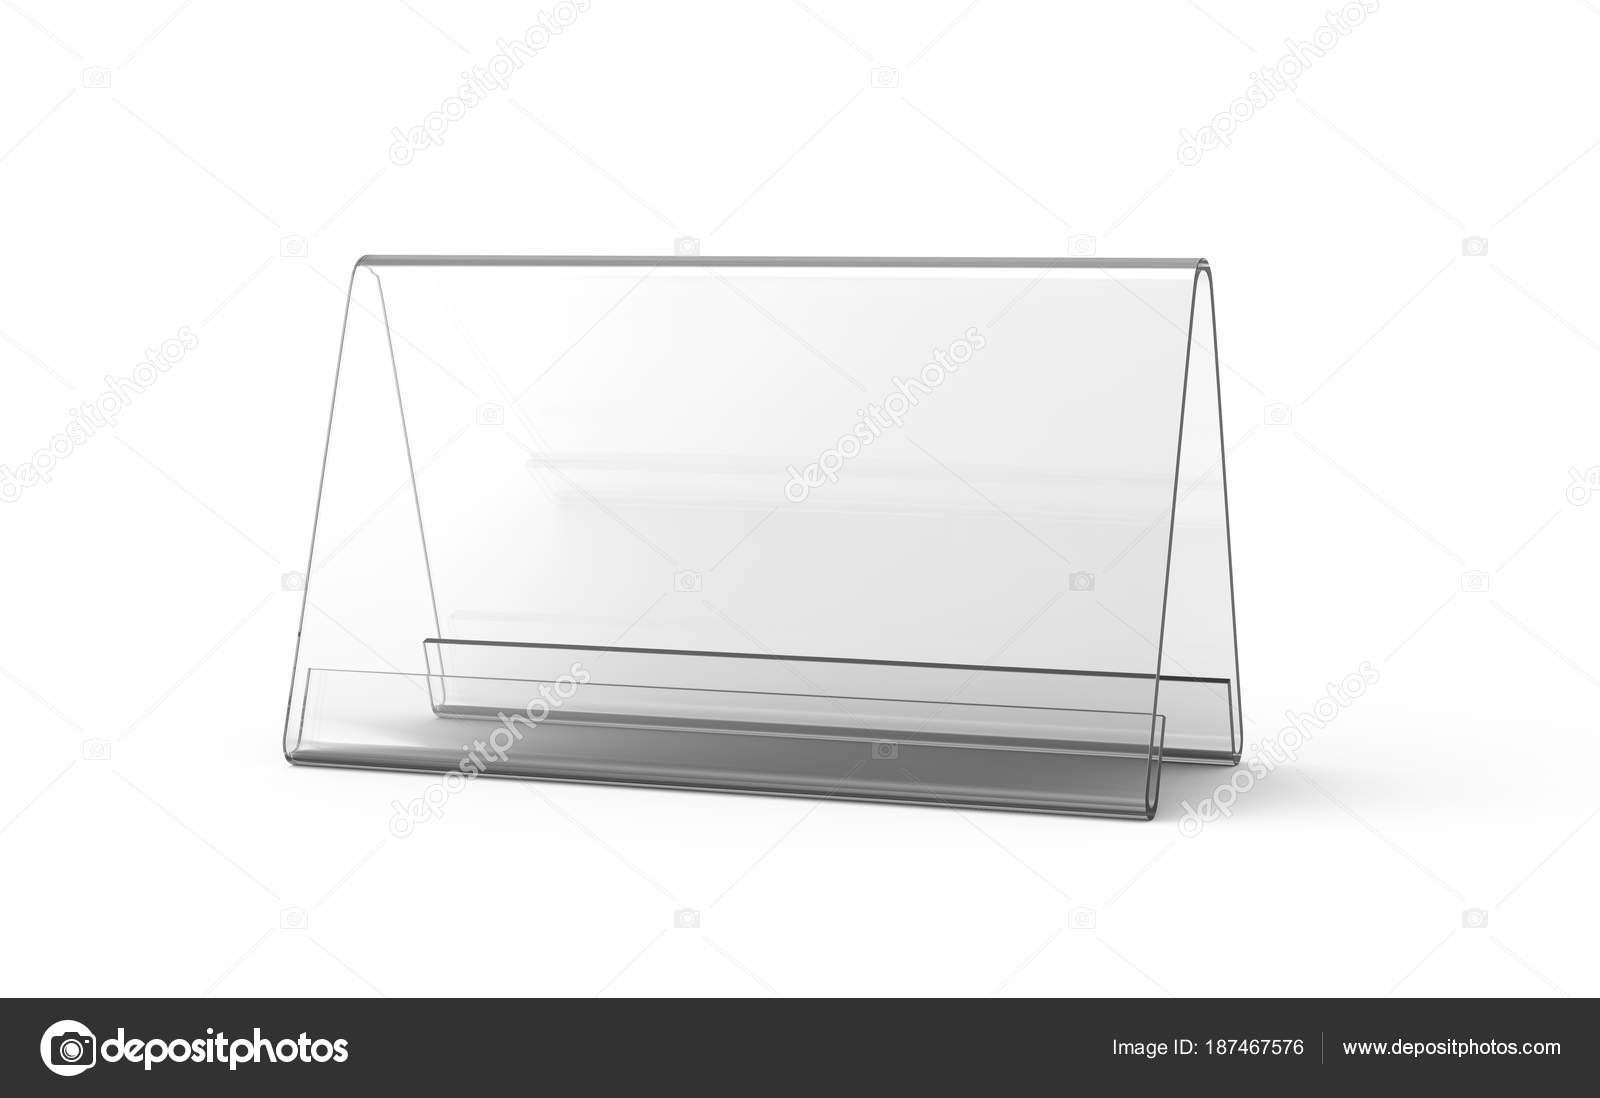 Display Stand Or Acrylic Table Tent Stock Photo Kchungtw - Table tent stands